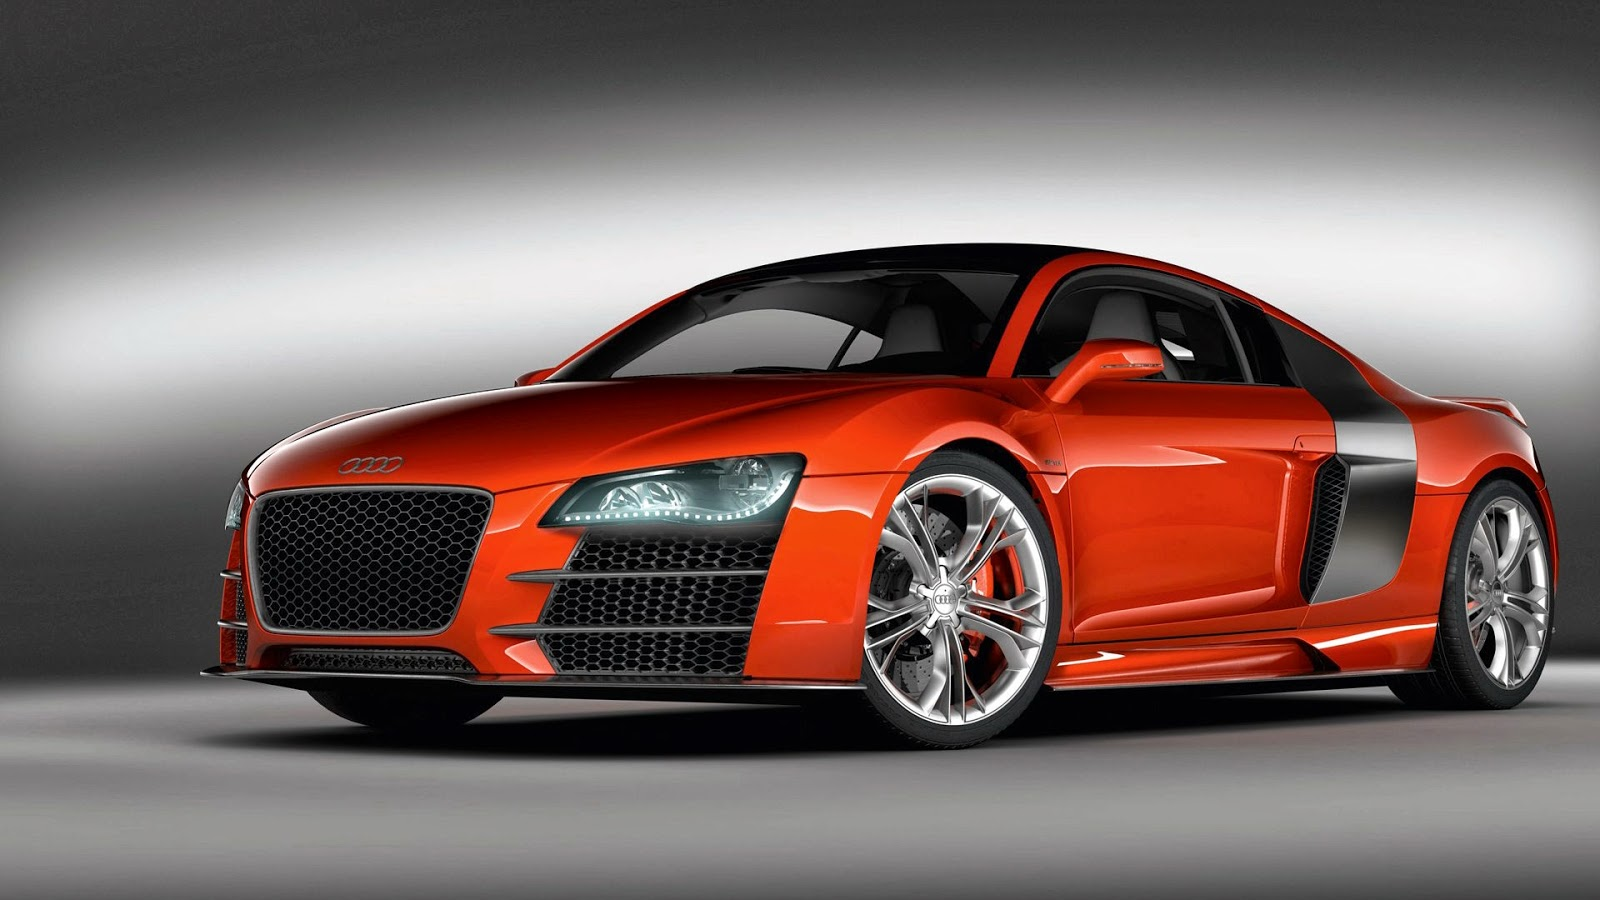 http://www.crazywallpapers.in/2014/03/audi-r8-1080p-best-wallpapers.html